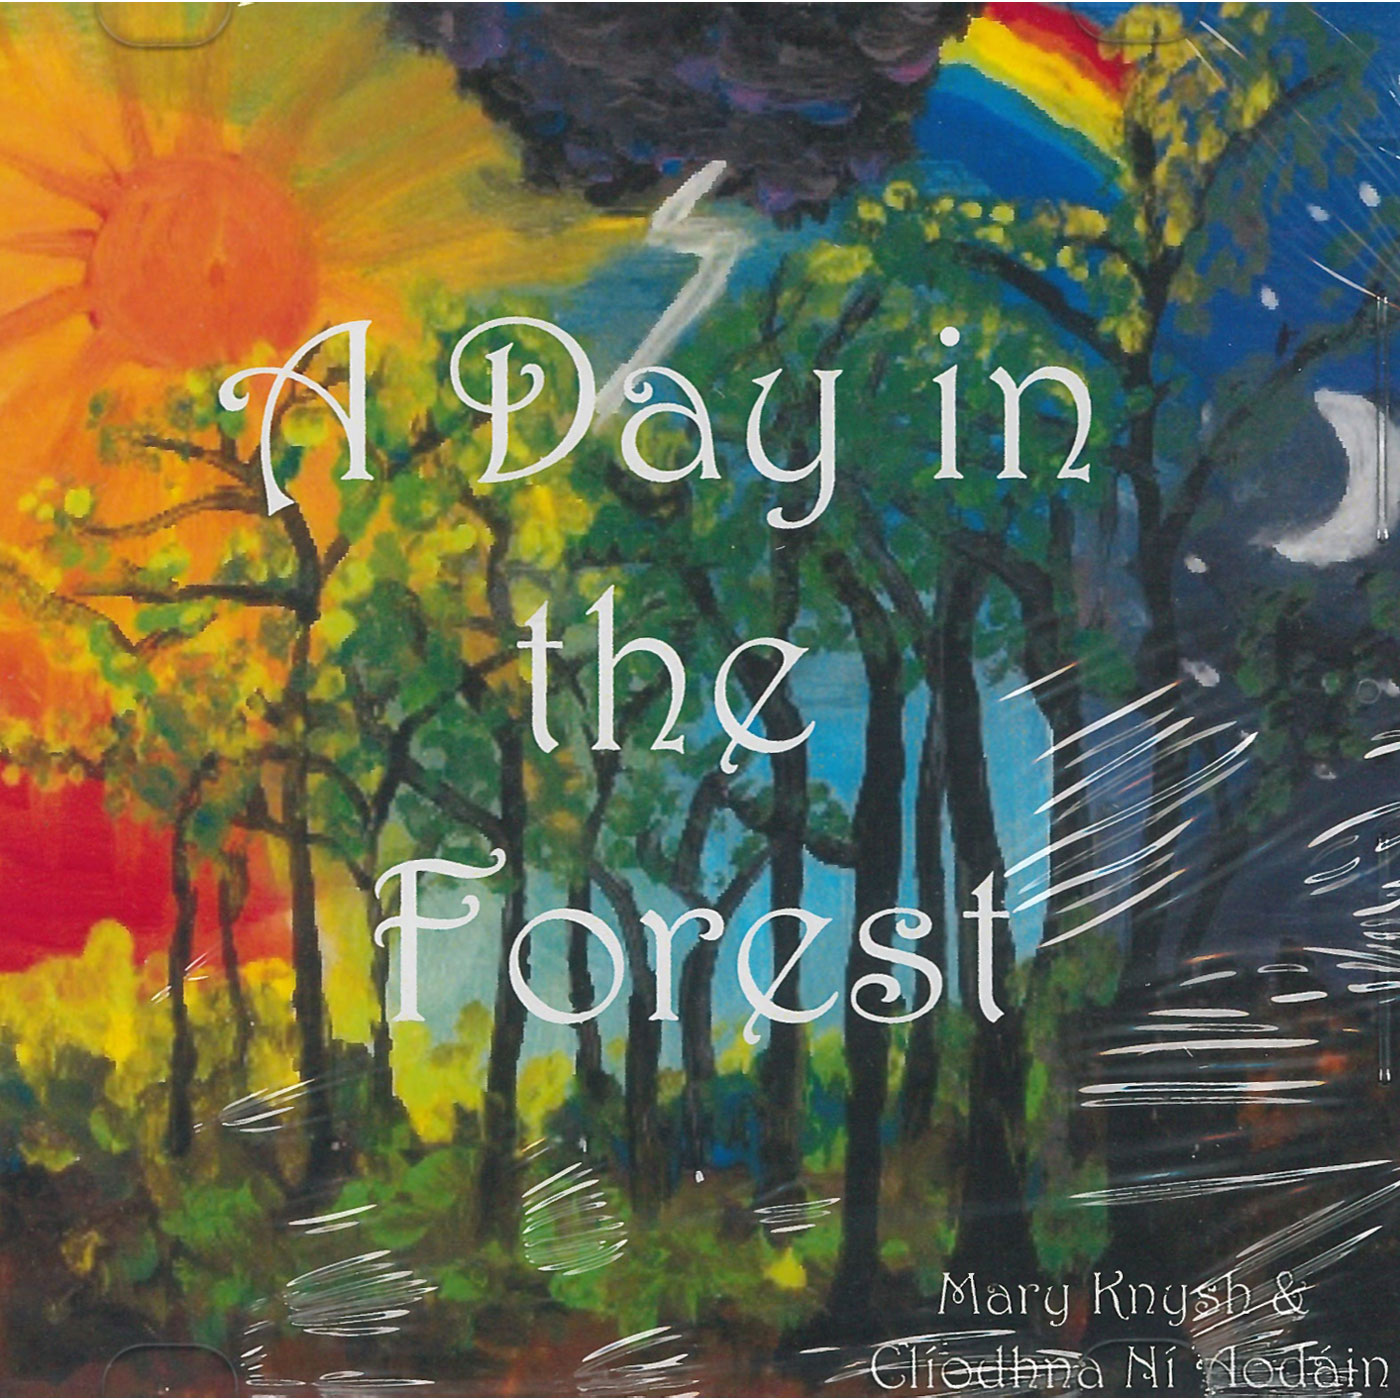 Rhythm Band A Day in the Forest by Mary Knysh and Cliodhna Ni Aodain